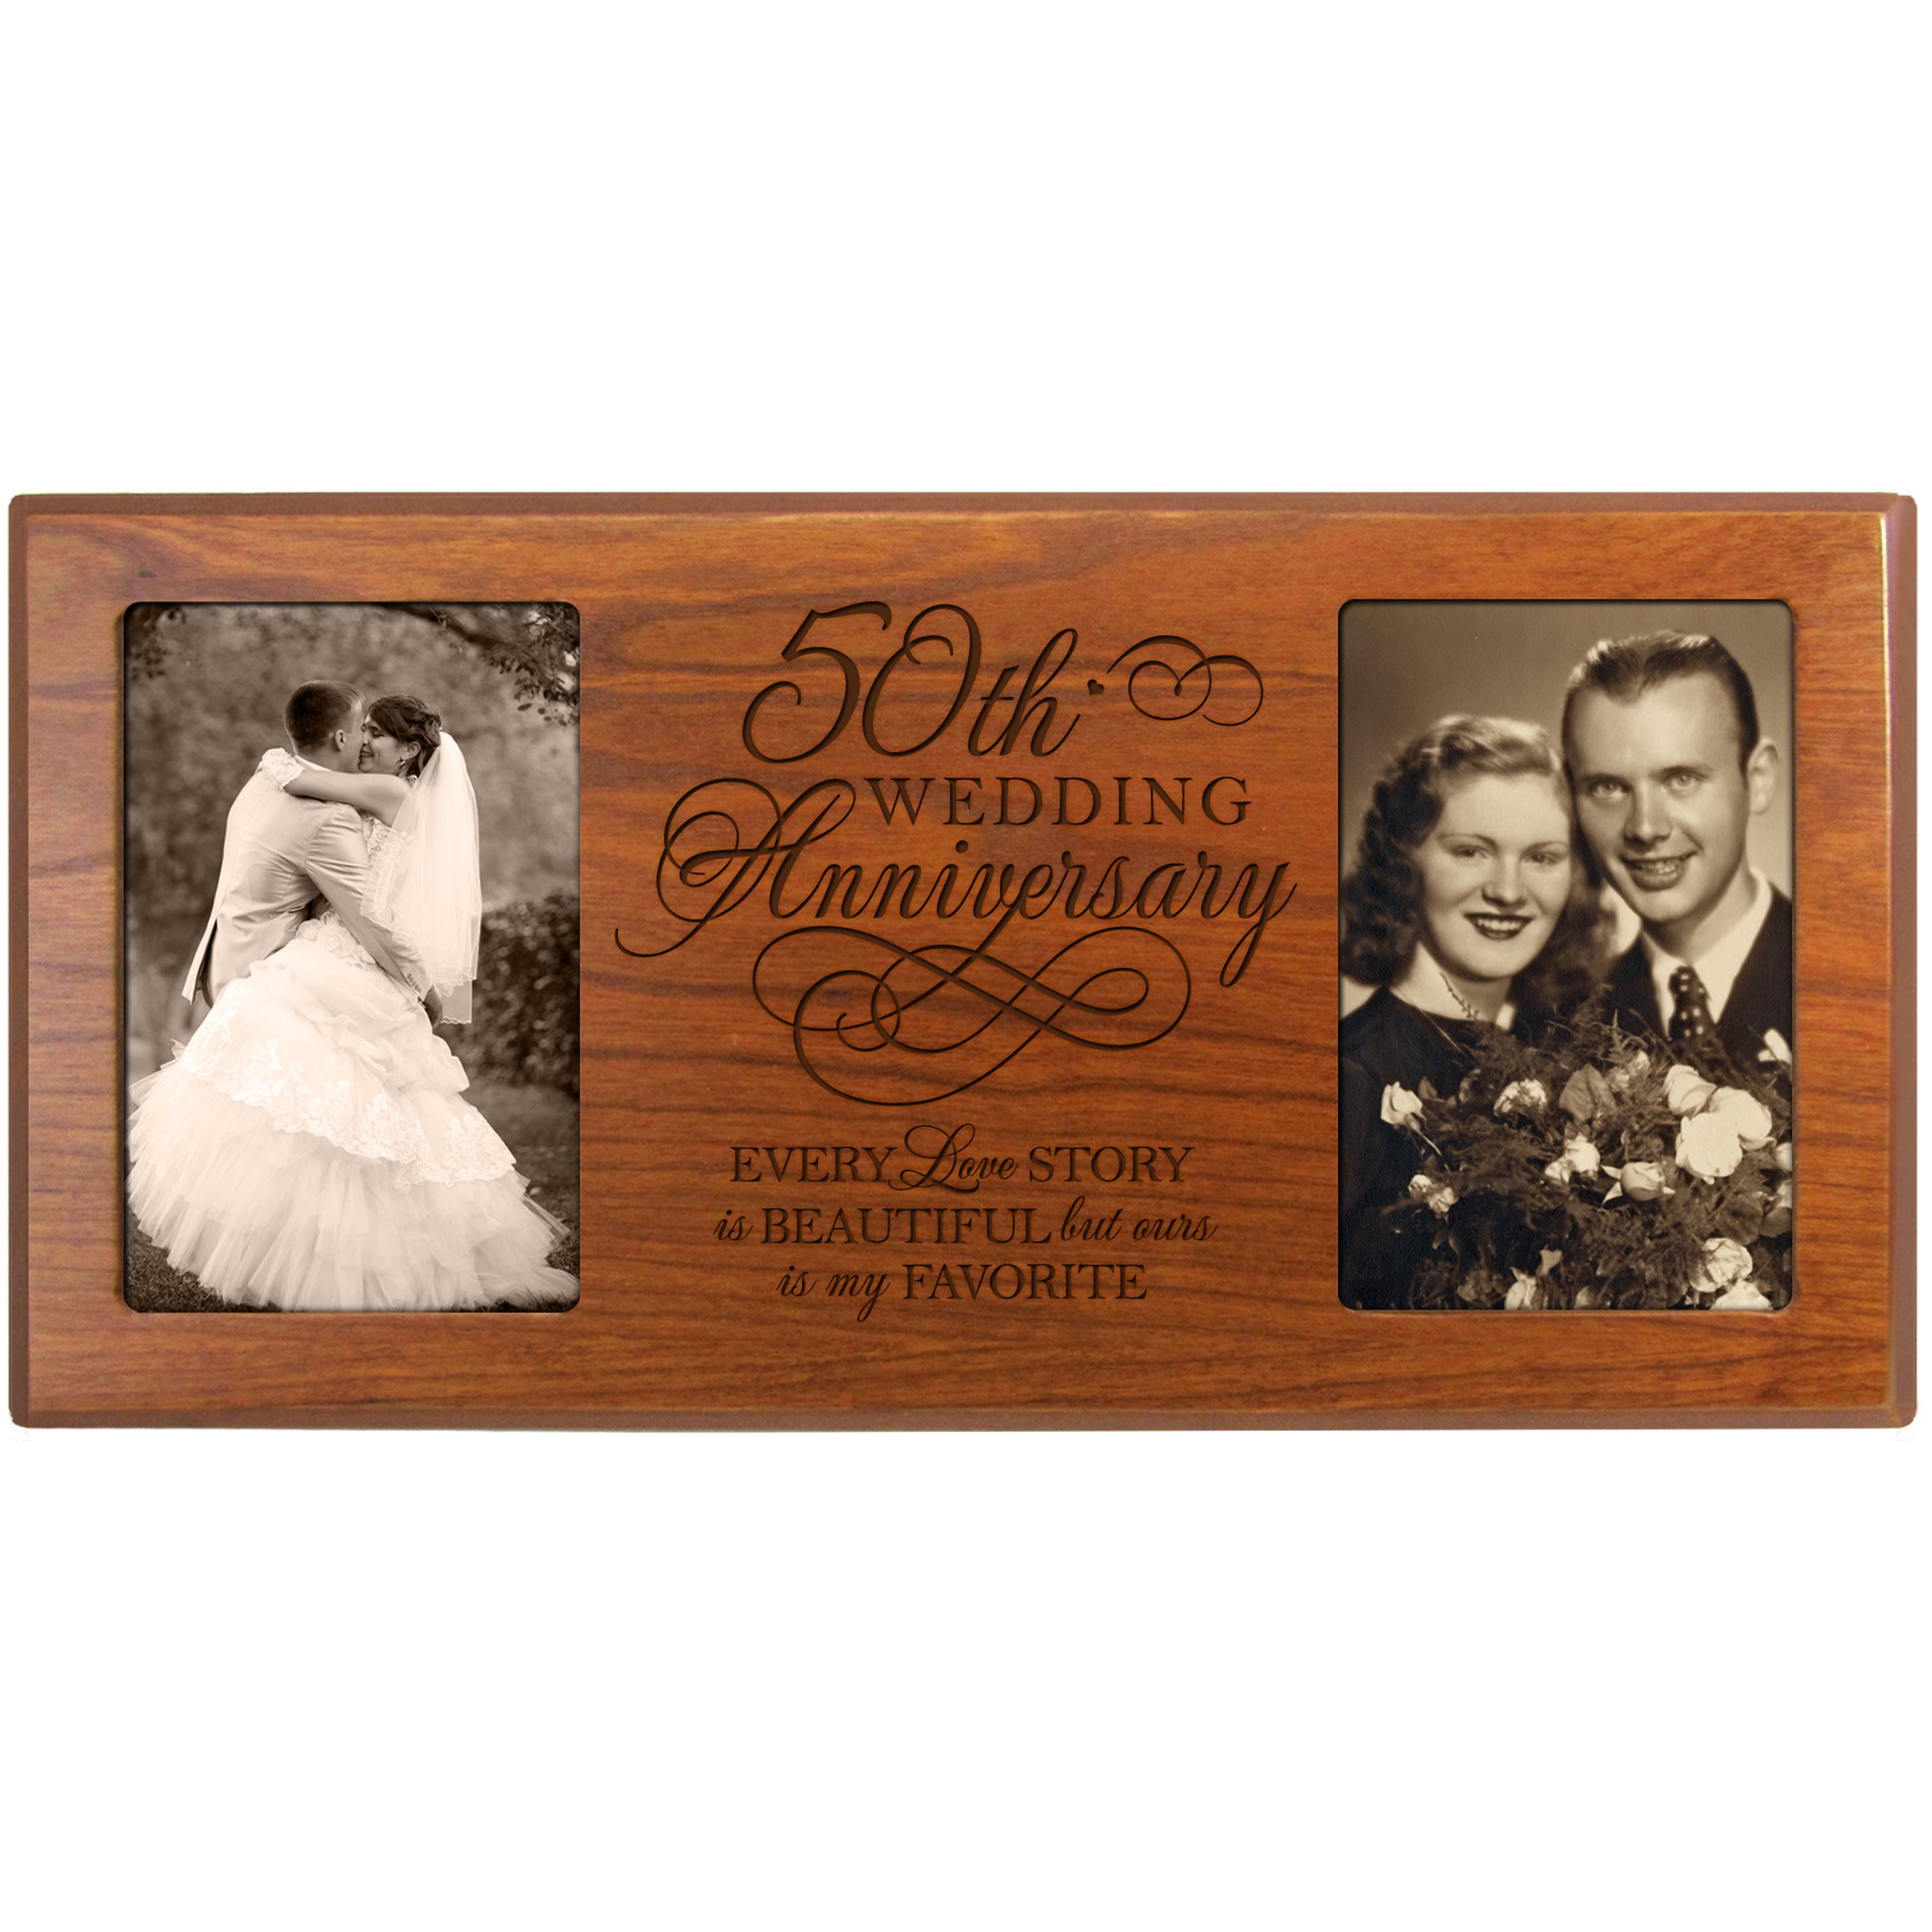 LifeSong Milestones 50th Wedding Anniversary Picture Frame Every Love Story is Beautiful but Ours is My Favorite Holds 2-4x6 Photos (Cherry)